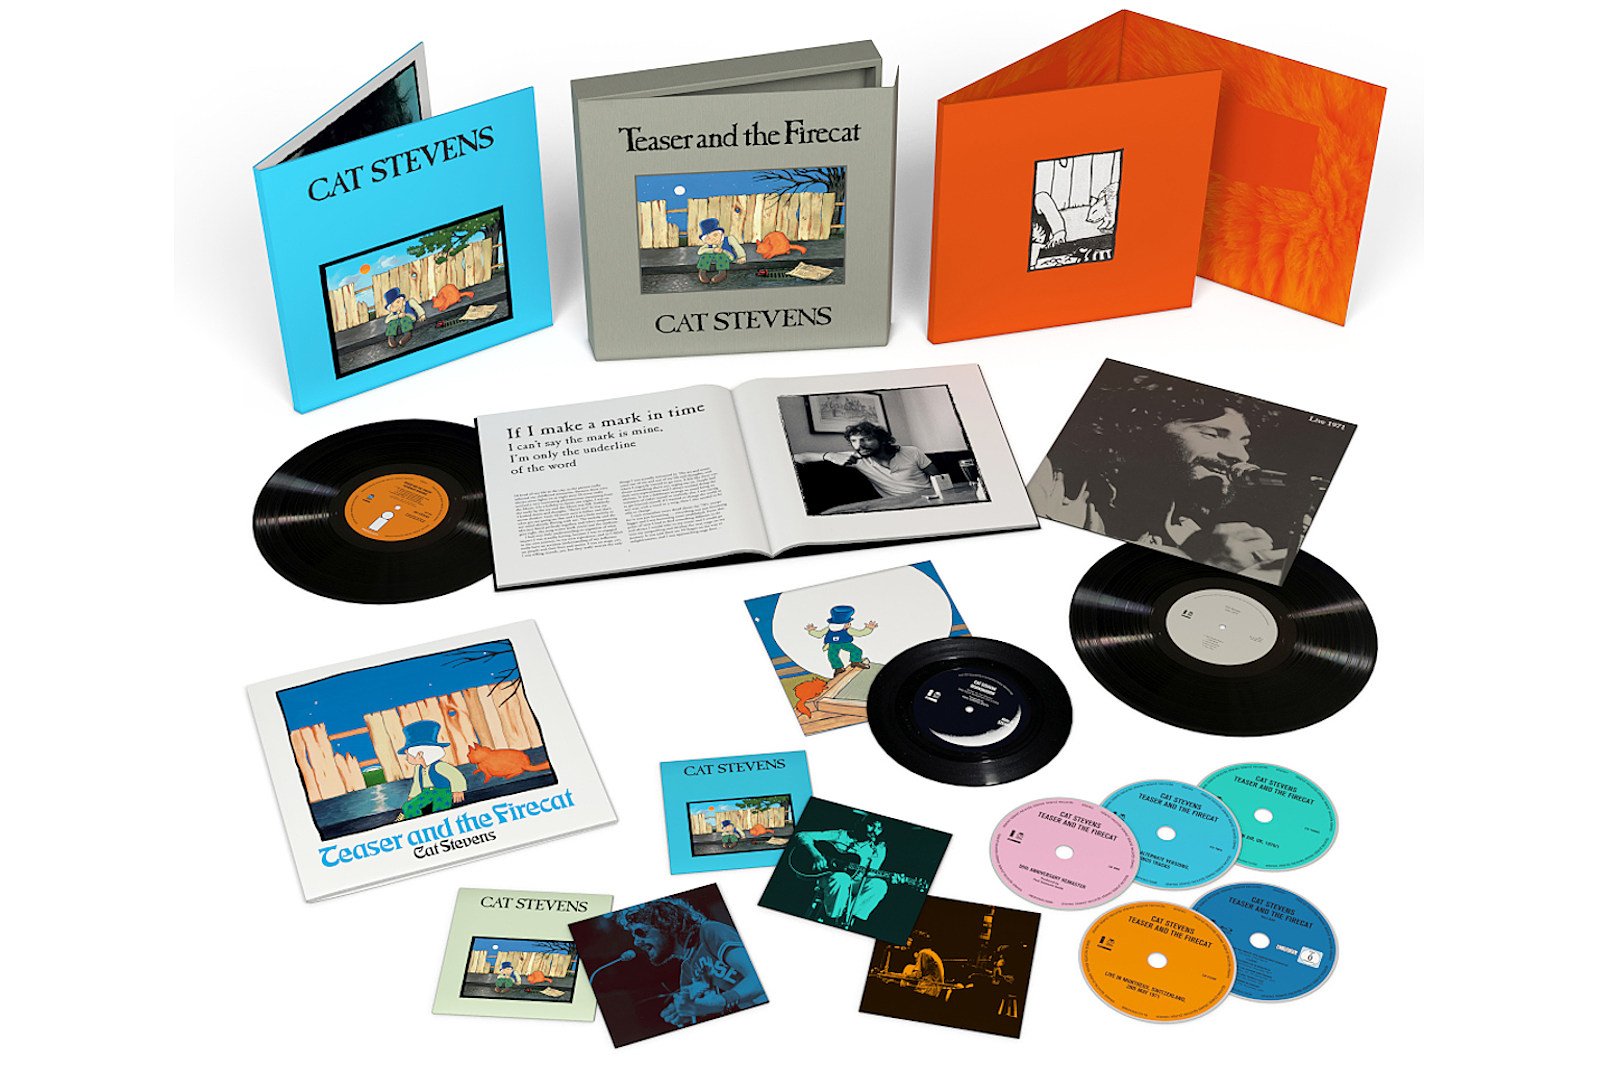 Cat Stevens Unveils 'Teaser and the Firecat' 50th Anniversary Set